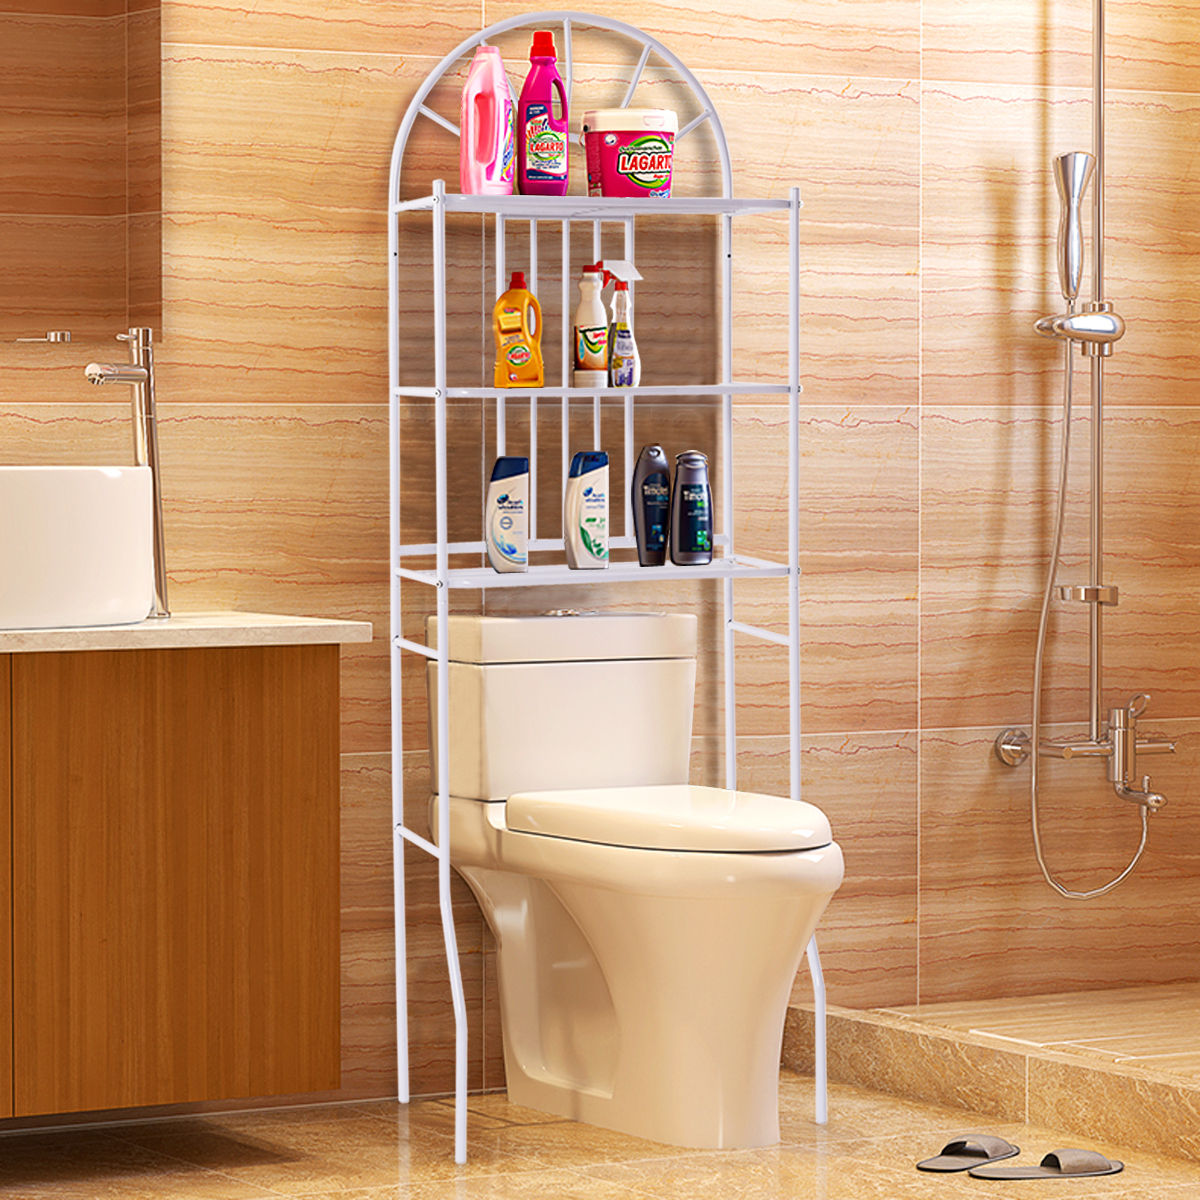 Costway 3 Shelf Over The Toilet Bathroom Space Saver Towel Storage Rack Organizer White